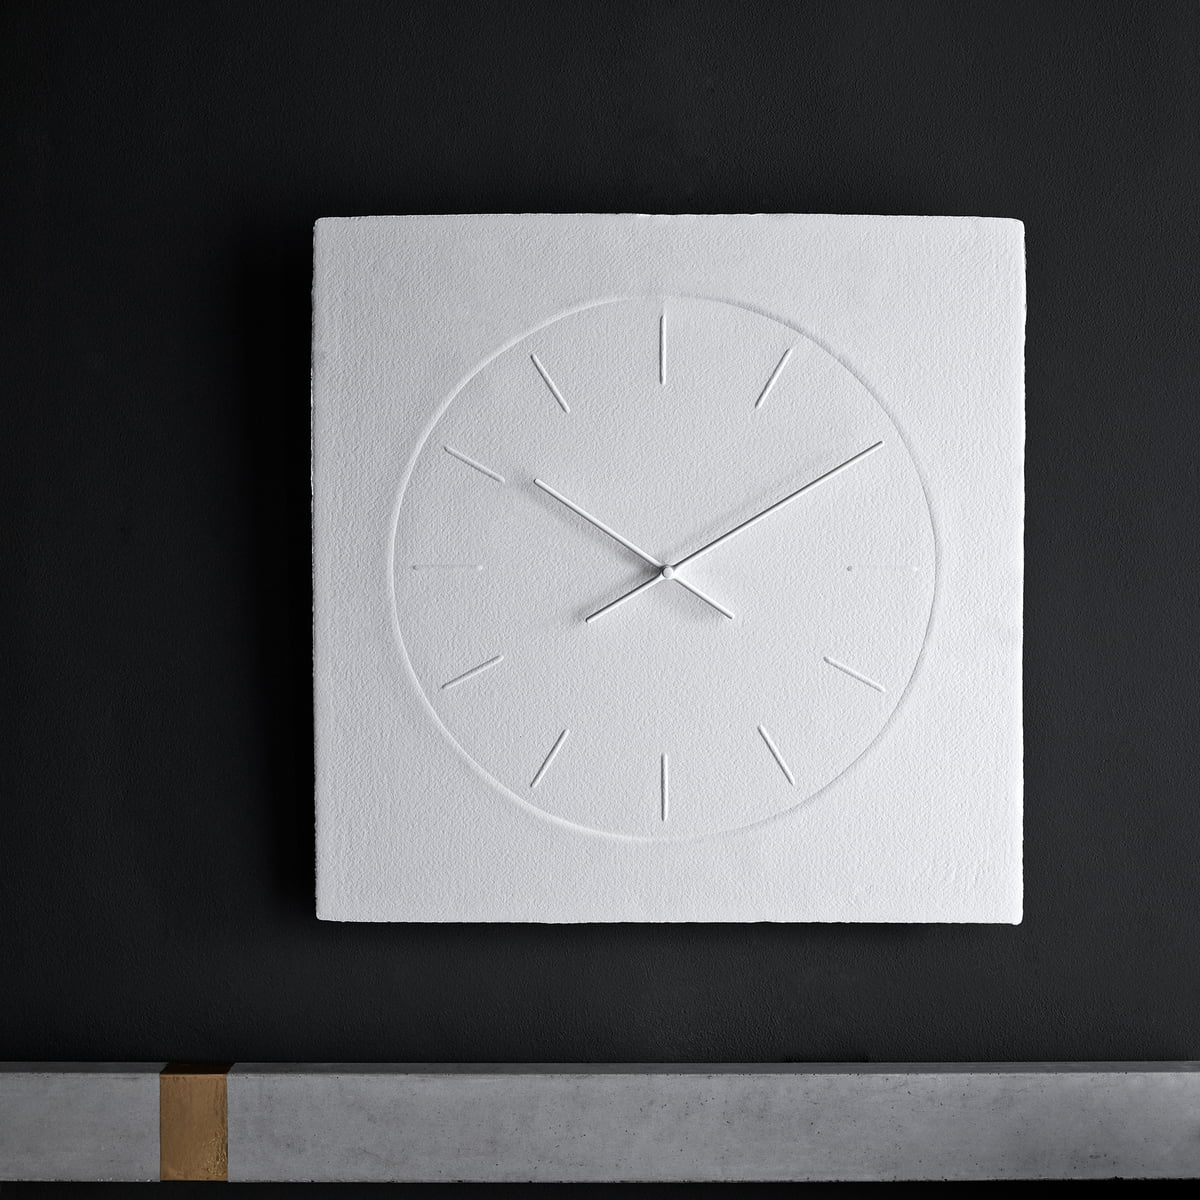 Wall clock by Mia Lagerman by Fritz Hansen